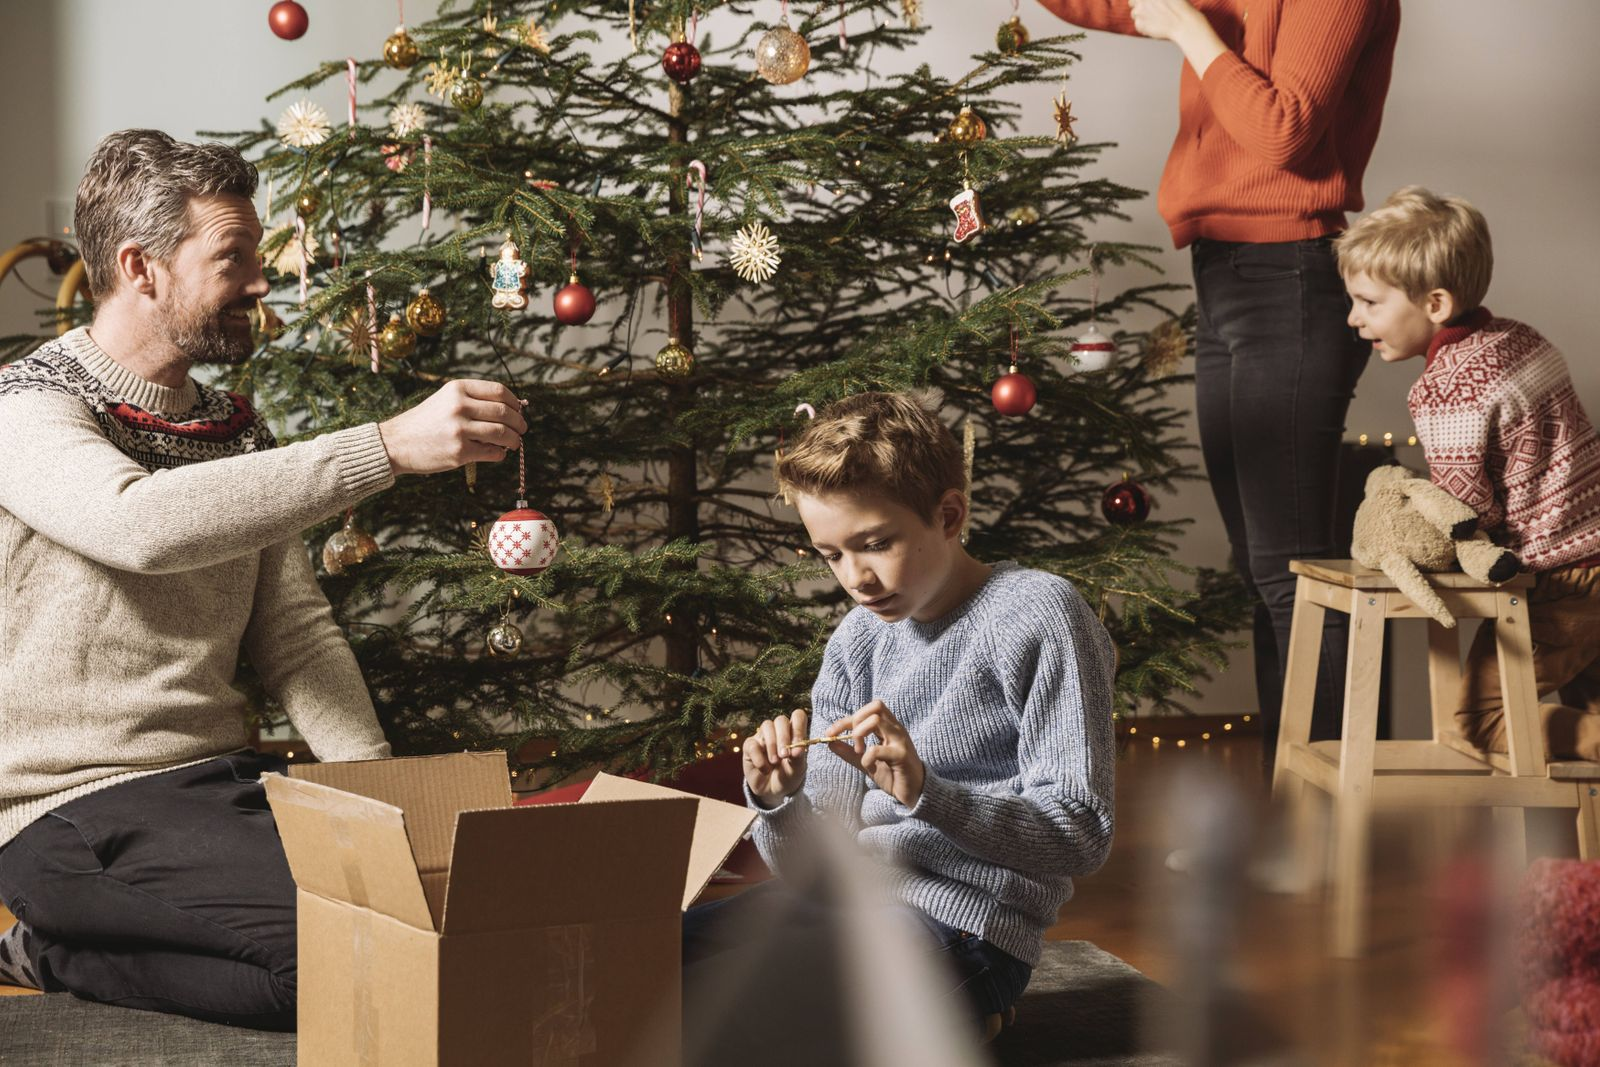 Family decorating Christmas tree model released Symbolfoto property released PUBLICATIONxINxGERxSUIx